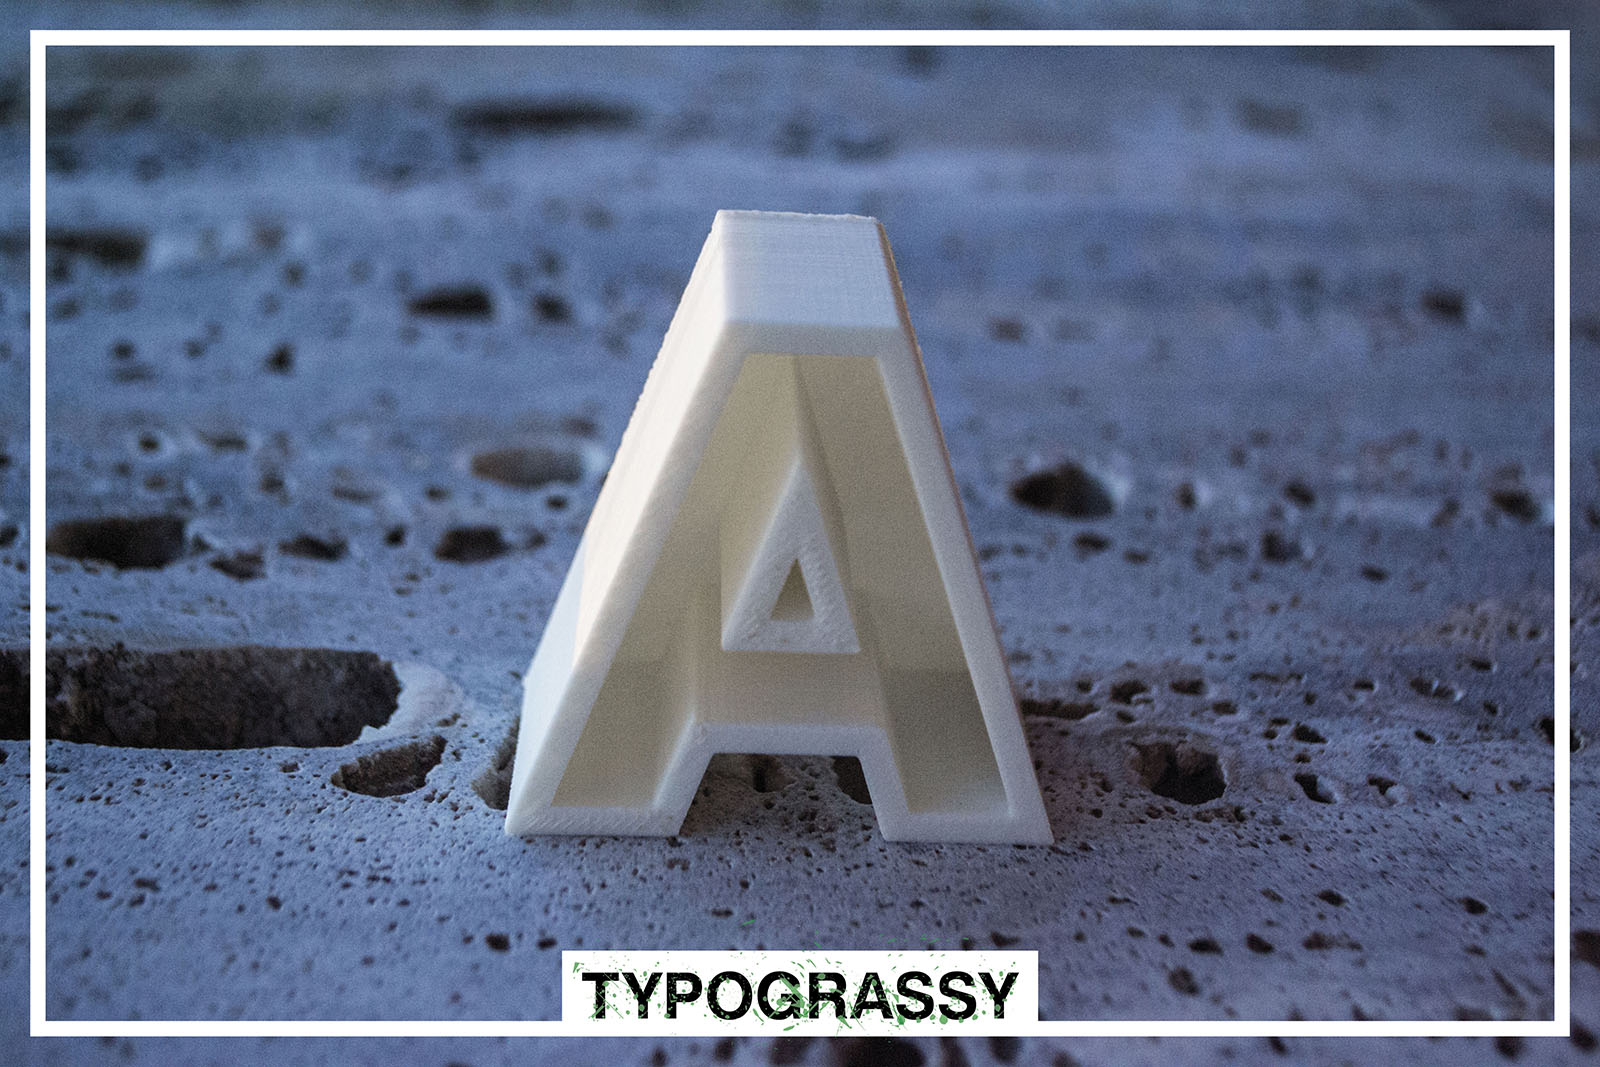 3D Printed letter_Typograssy_3d product_yianart.com